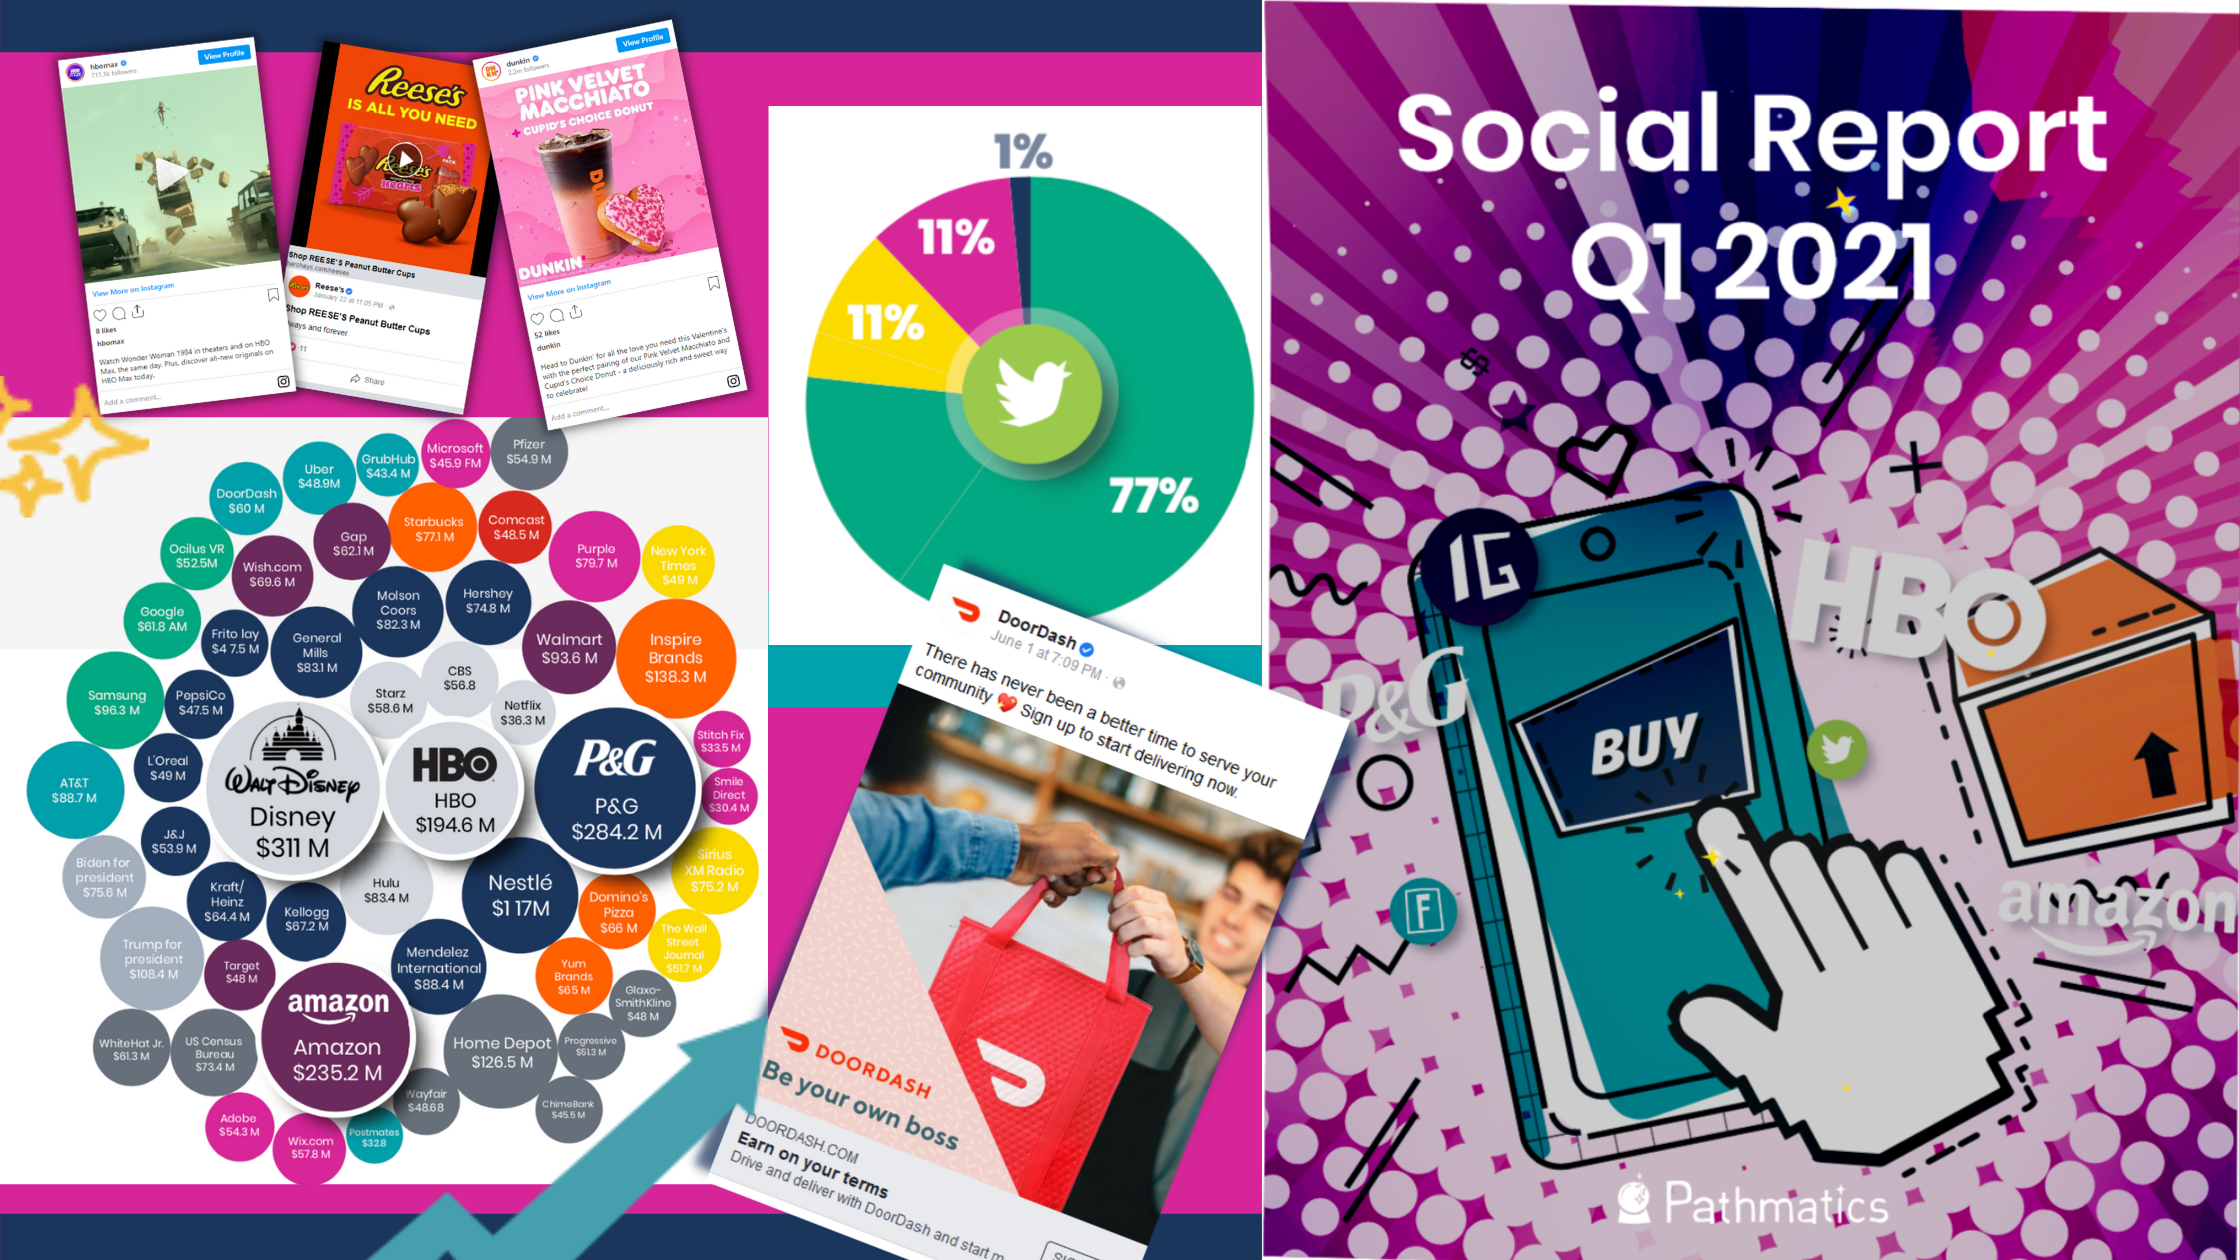 Q1 2021 Social Ad Report: Top Advertisers on Facebook, Instagram, Twitter